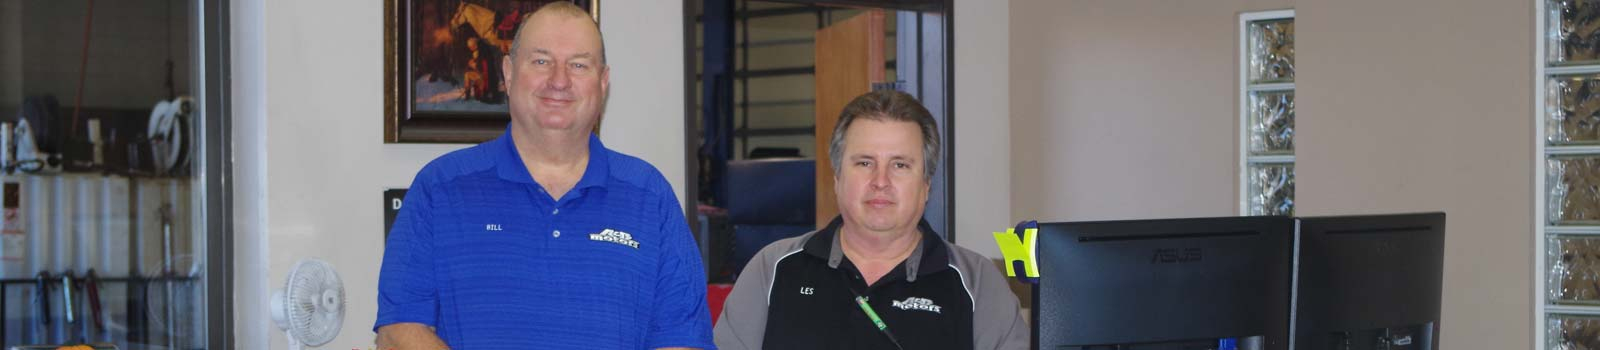 A & B Motors Shop Owners